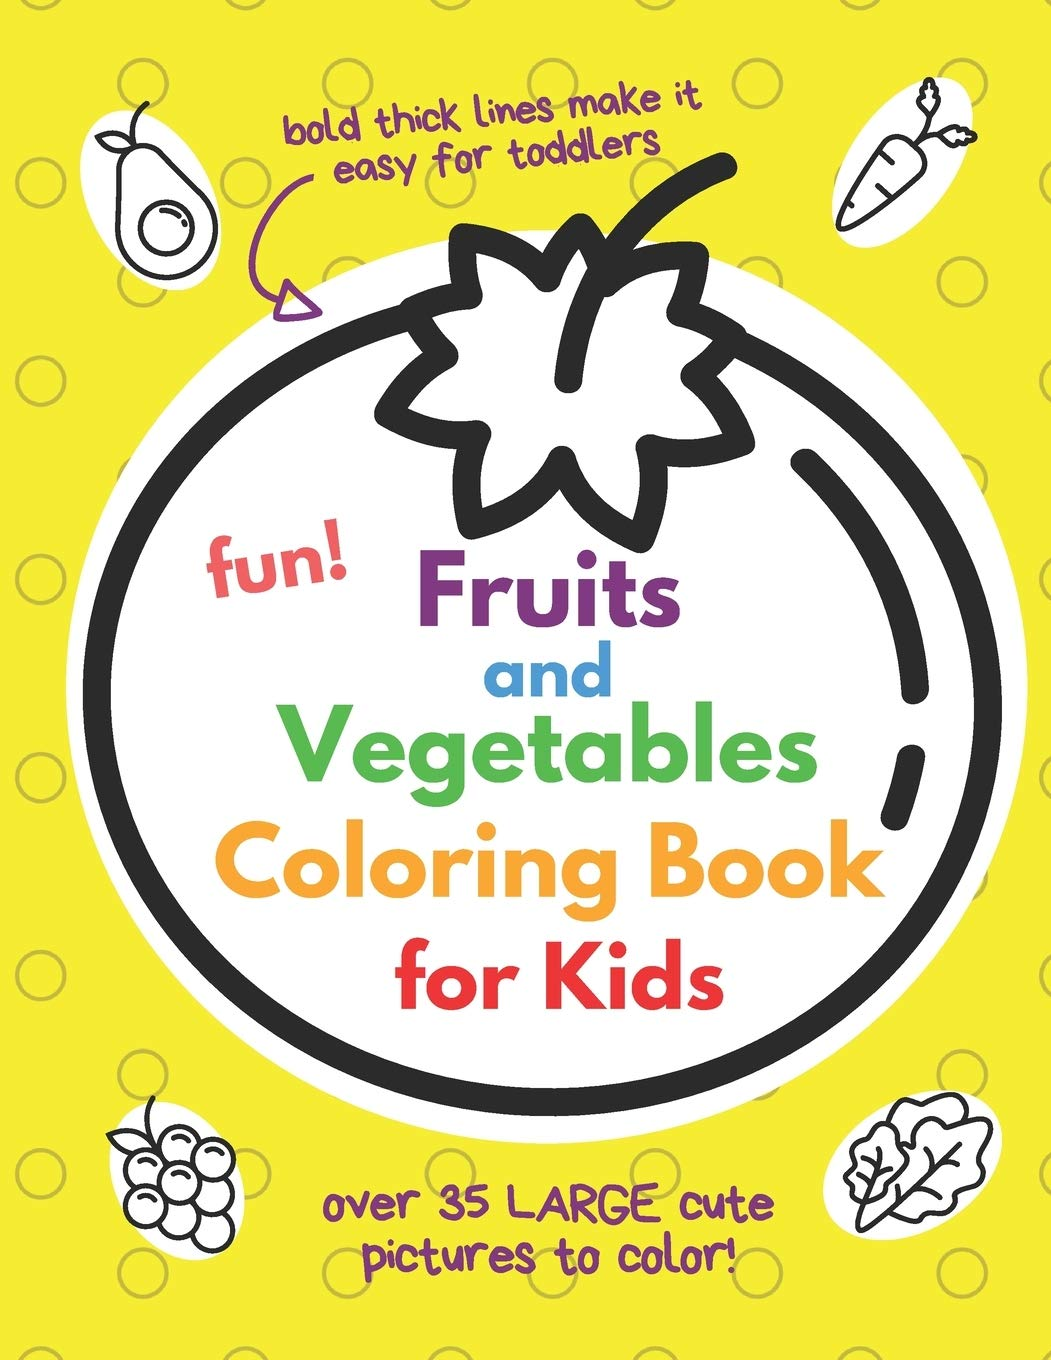 Fun Fruits And Vegetables Coloring Book For Kids Awesome My First Toddler Coloring Book With Thick Bold Lines Both Large Pictures Words To Colour 34 Fruit Veg Plus Bonus Pages